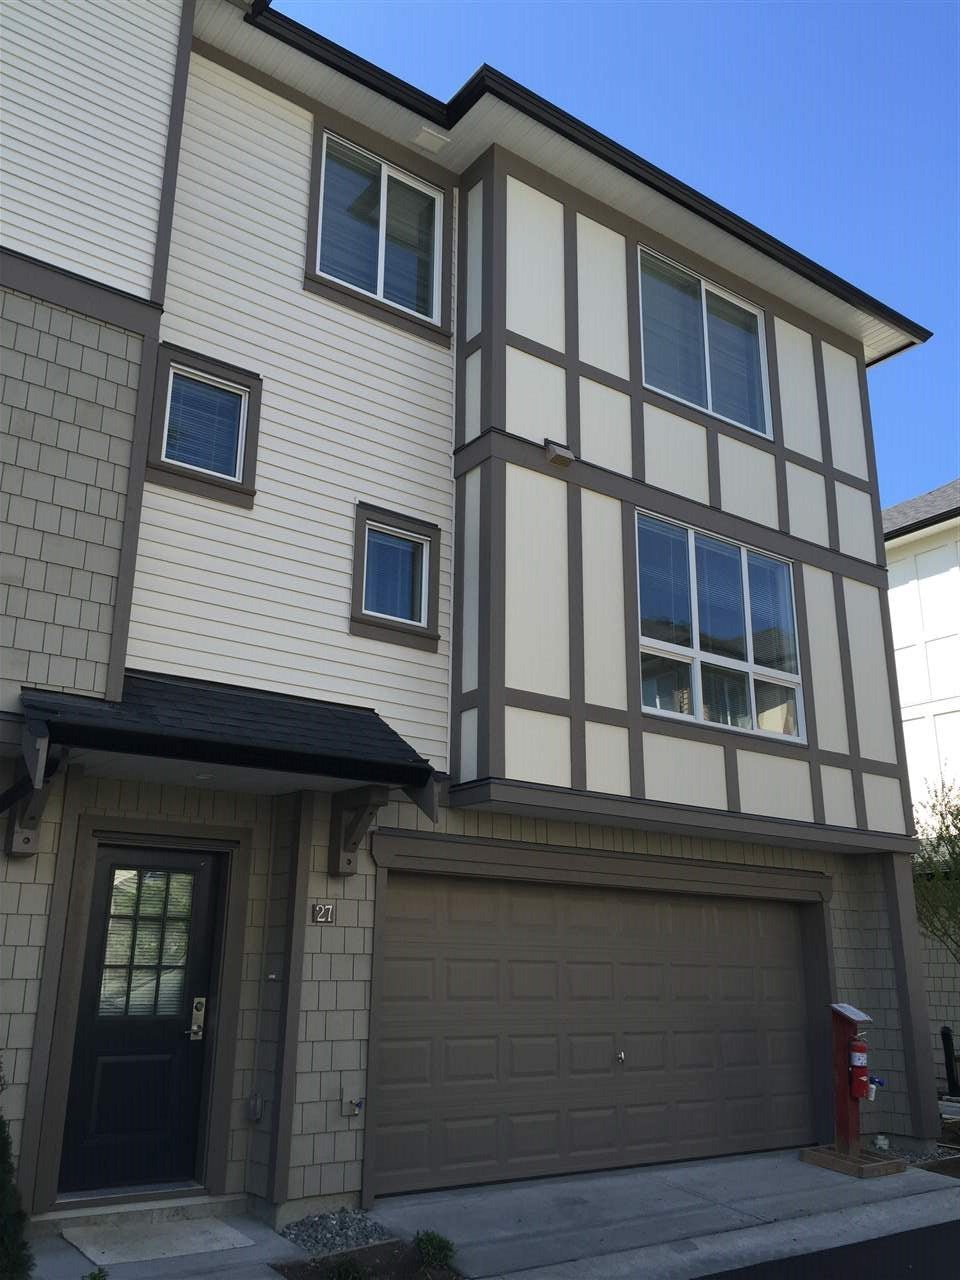 27 7848 209 STREET - Willoughby Heights Townhouse for sale, 2 Bedrooms (R2528348) - #2